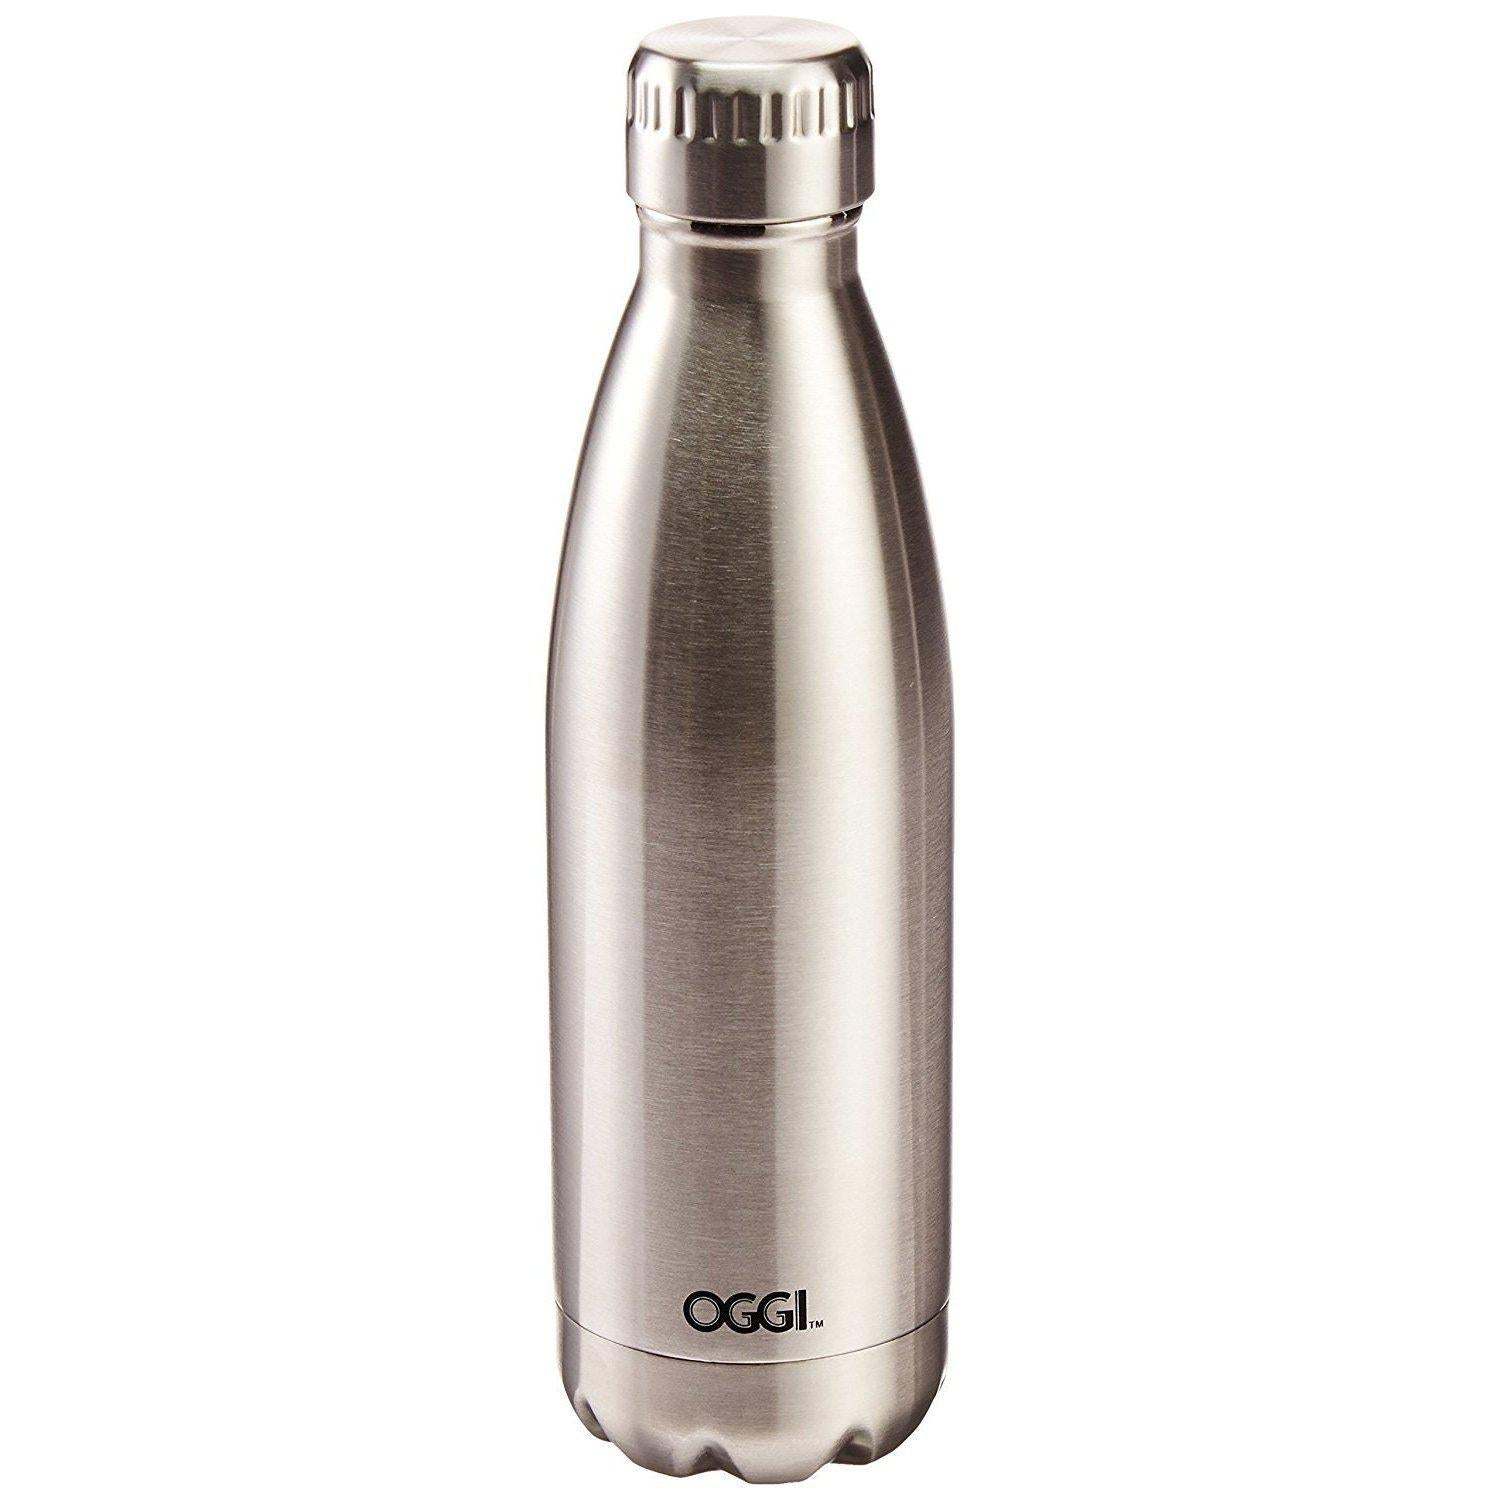 Oggi 8085.2 Stainless Steel Calypso Double Wall Sports Bottle with Screw Top .05